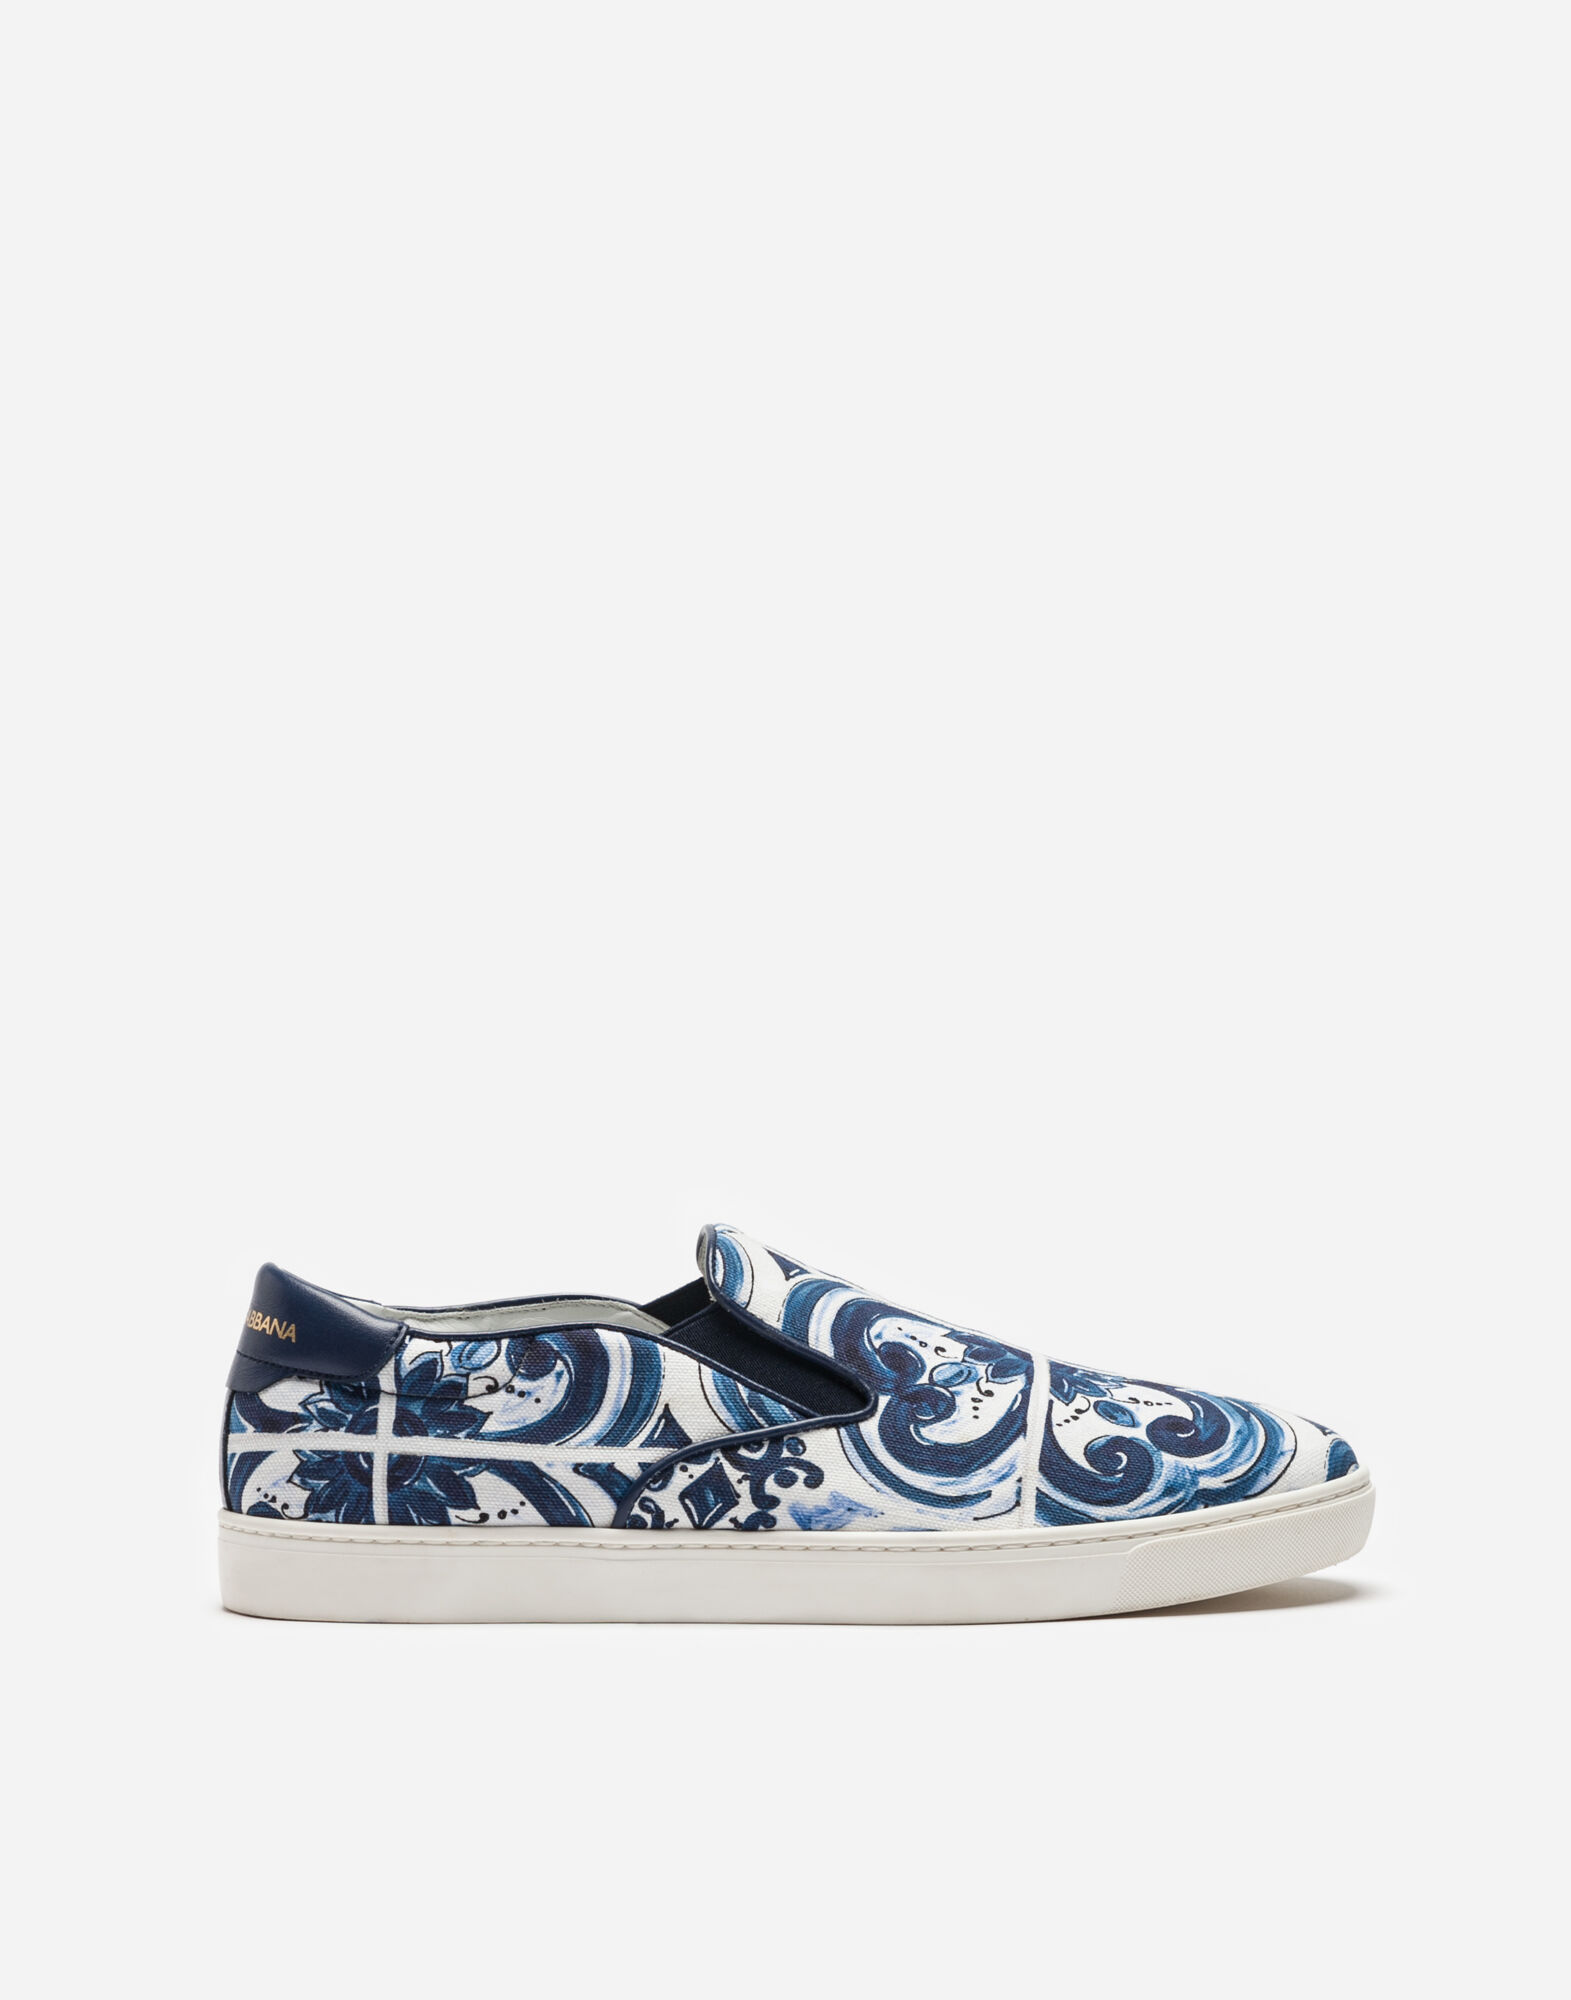 LONDON SNEAKERS IN PRINTED CANVAS